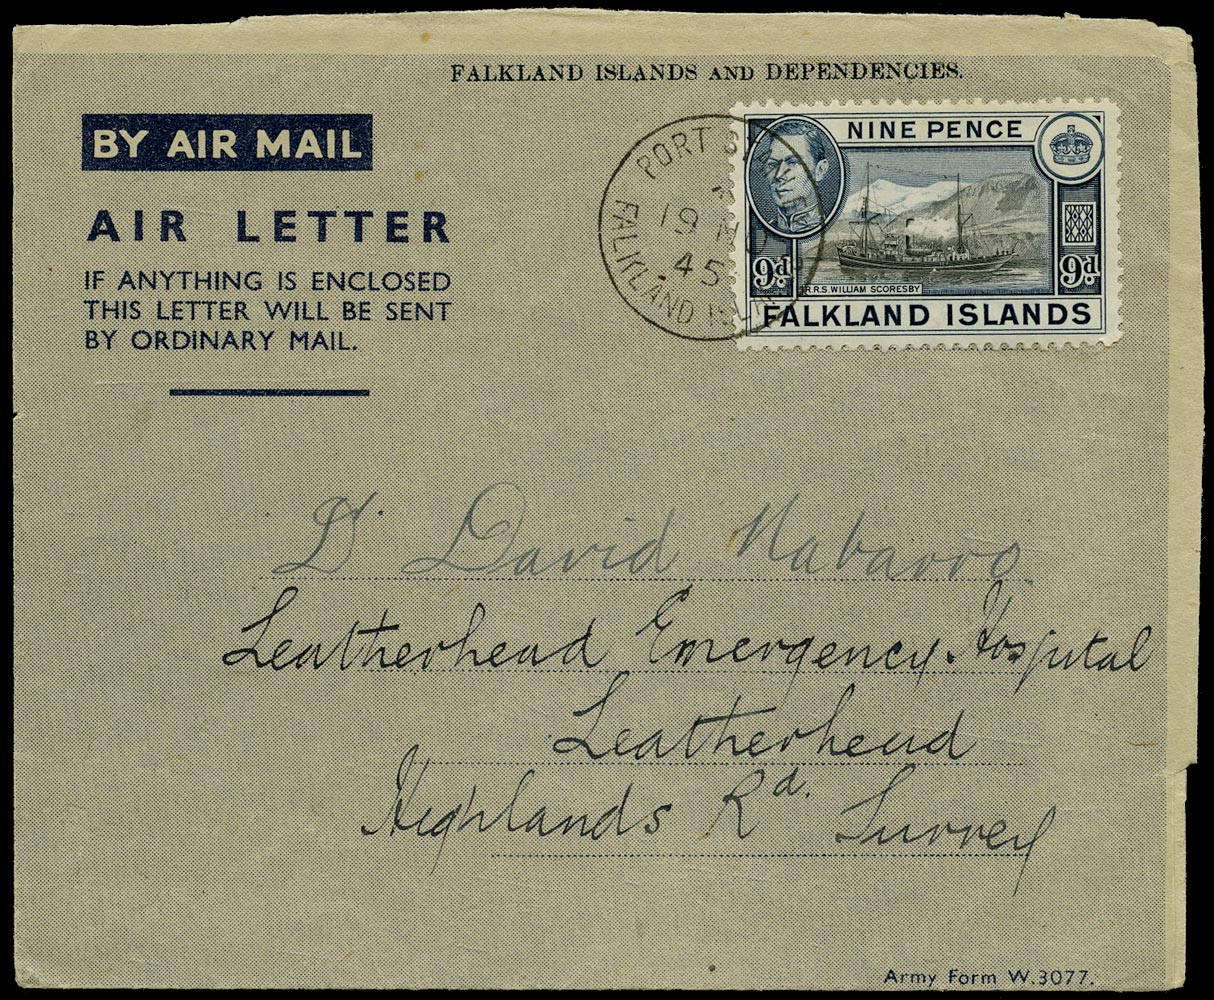 FALKLAND ISLANDS 1945  SG157 Cover Army Air Letter form W.3077 used to London